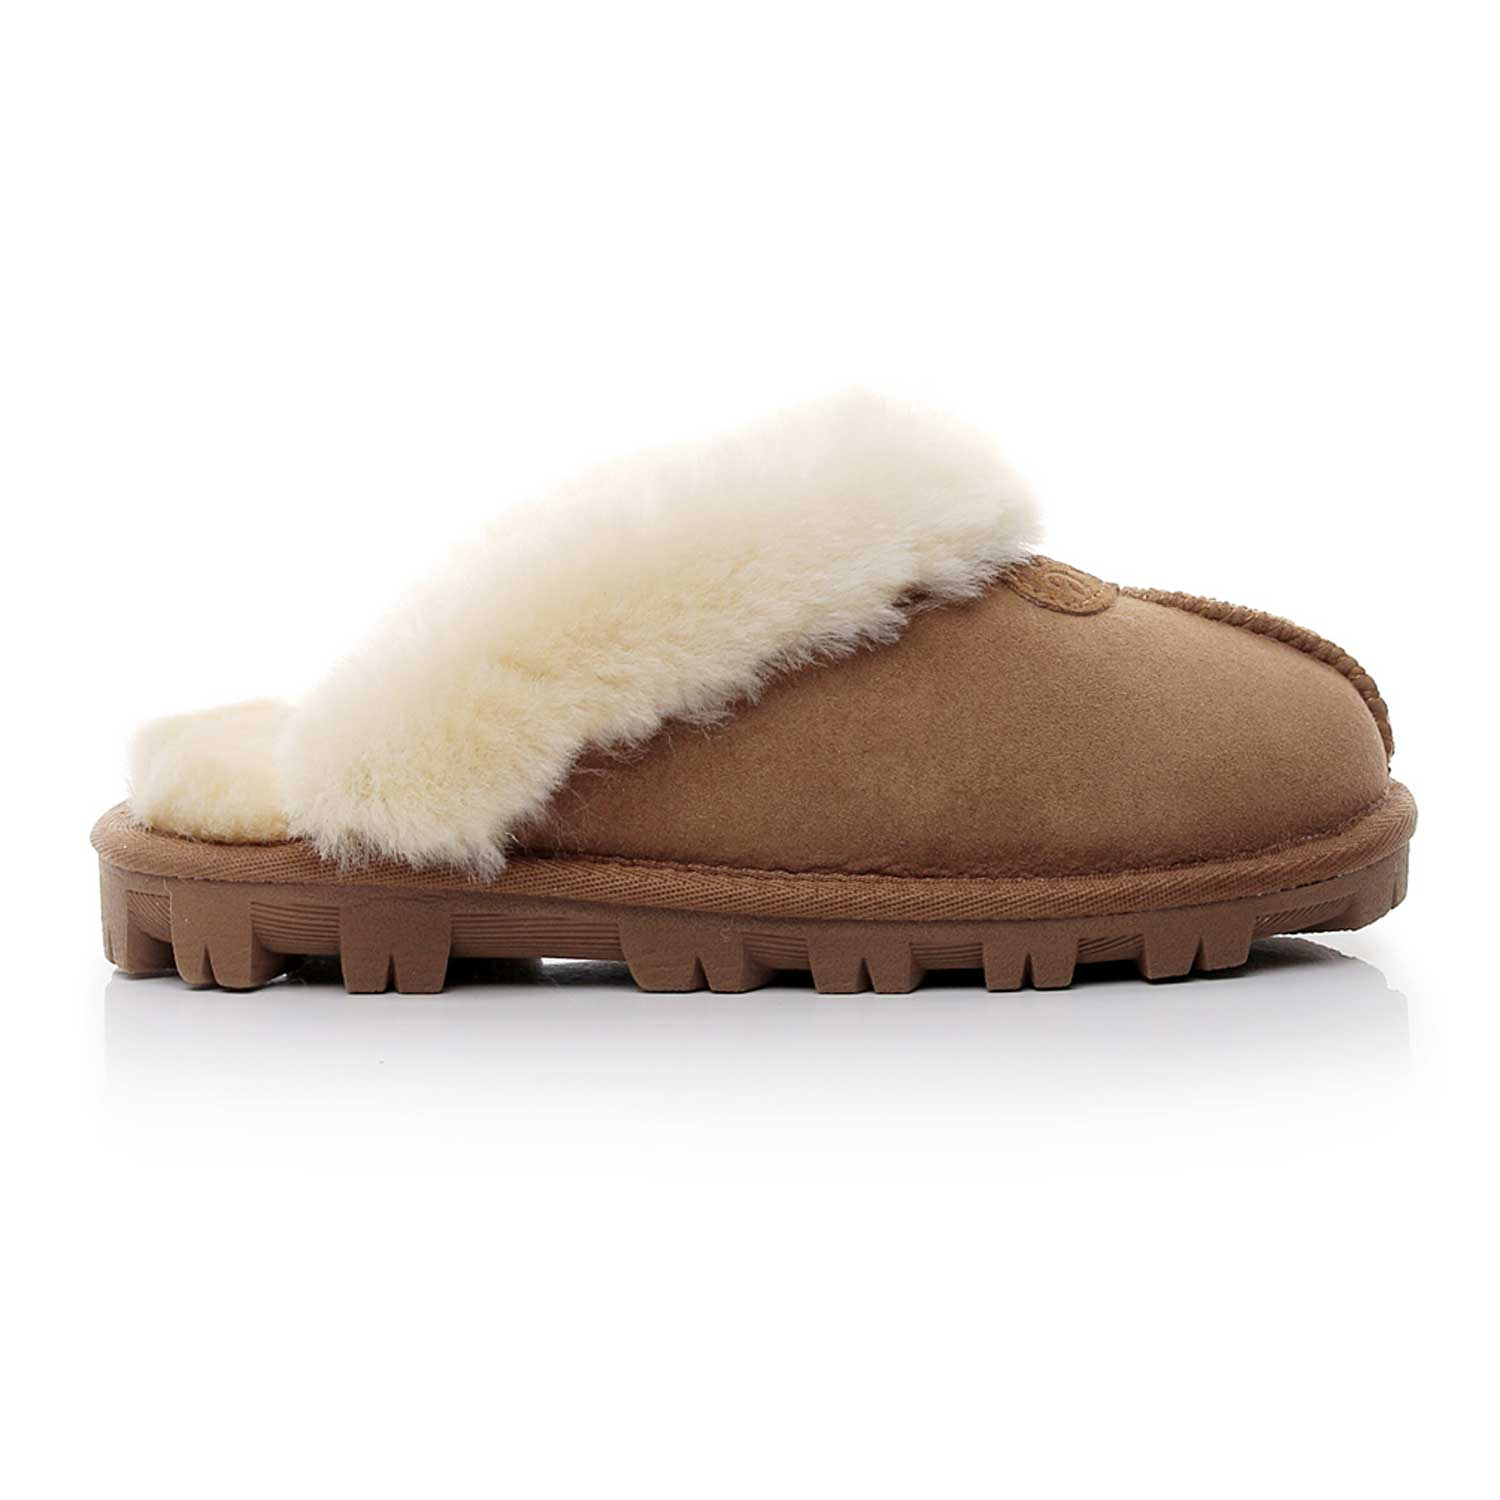 SW1200-Mubo-UGG-Women-039-s-Scuff-Slippers-Chestnut-Colour